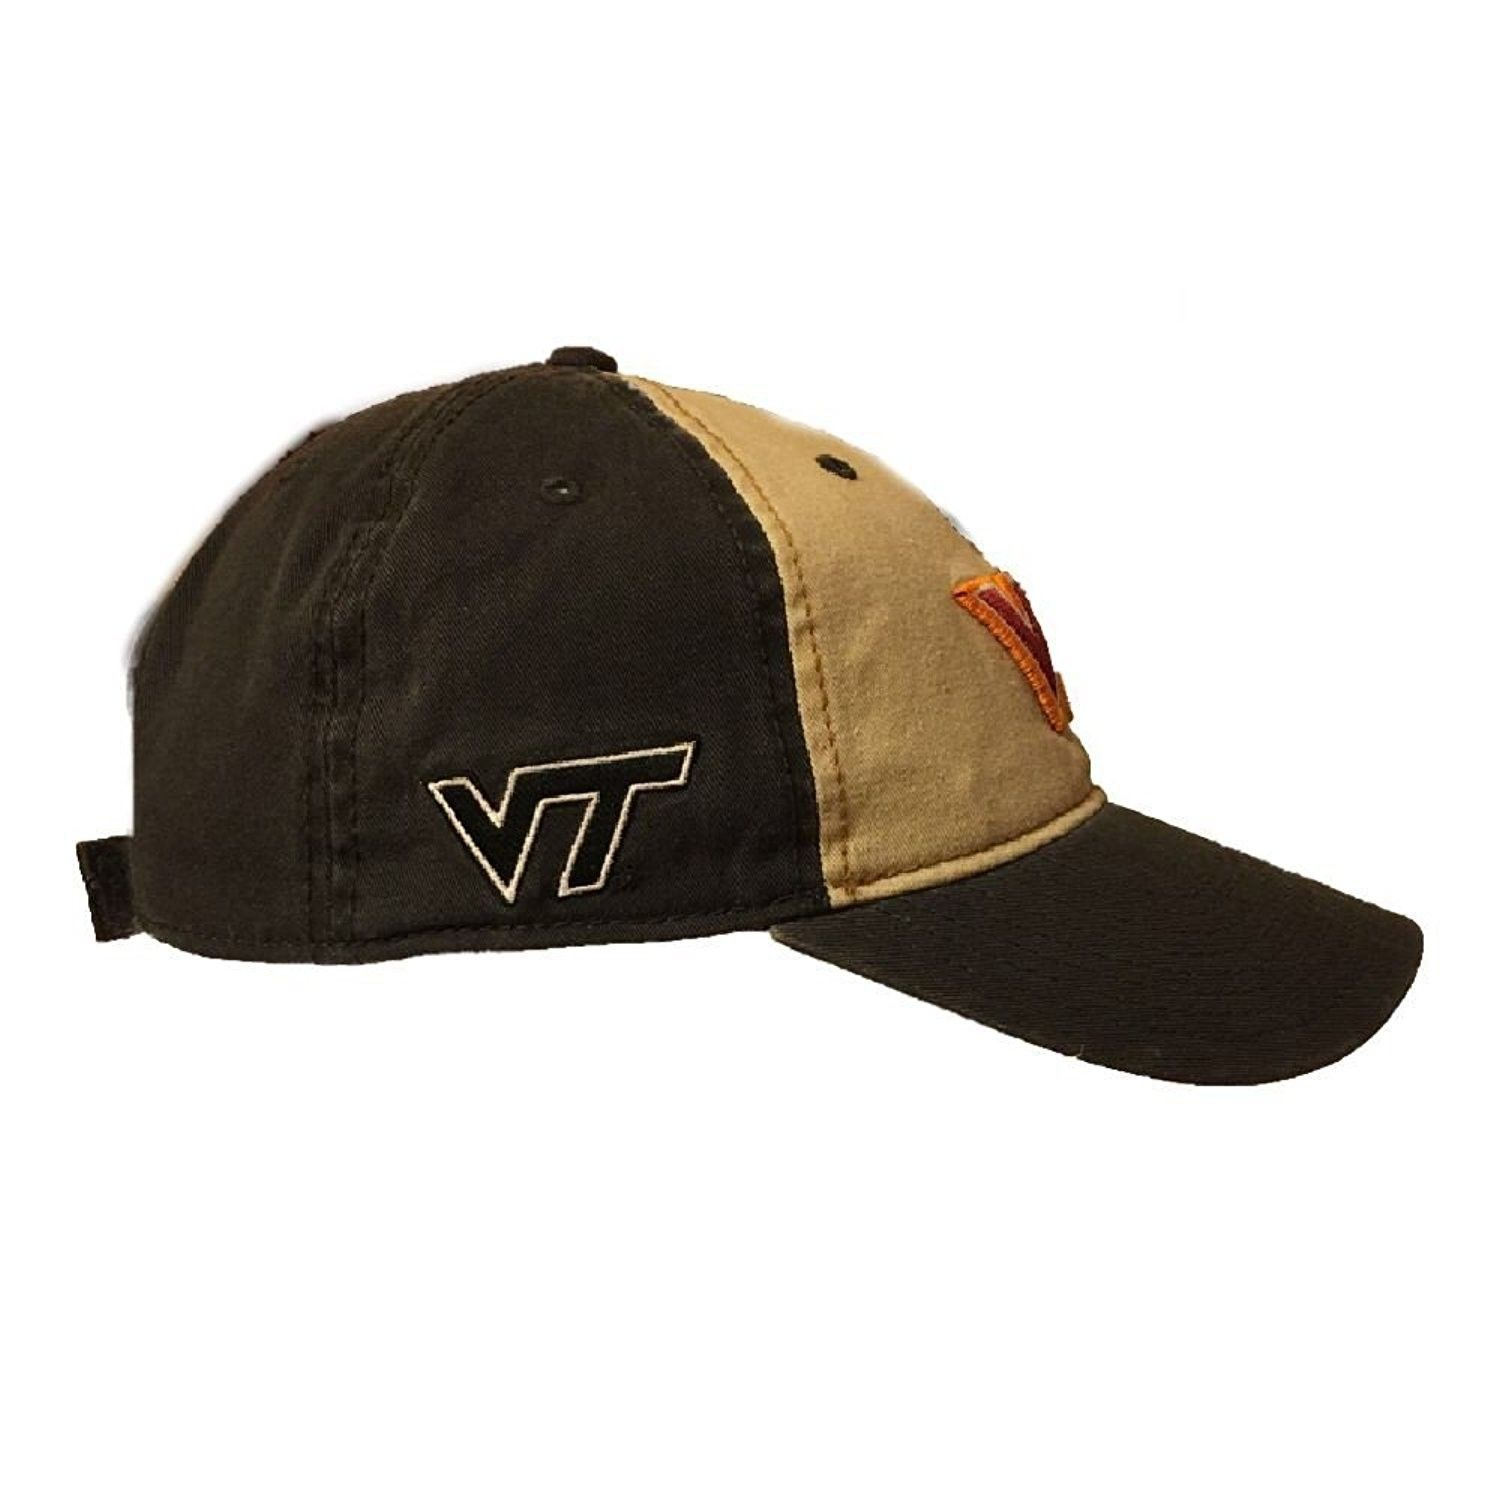 Virginia Tech Hokies Khaki and Black hat - C518756K5II - Hats   Caps ... 558fe97f7